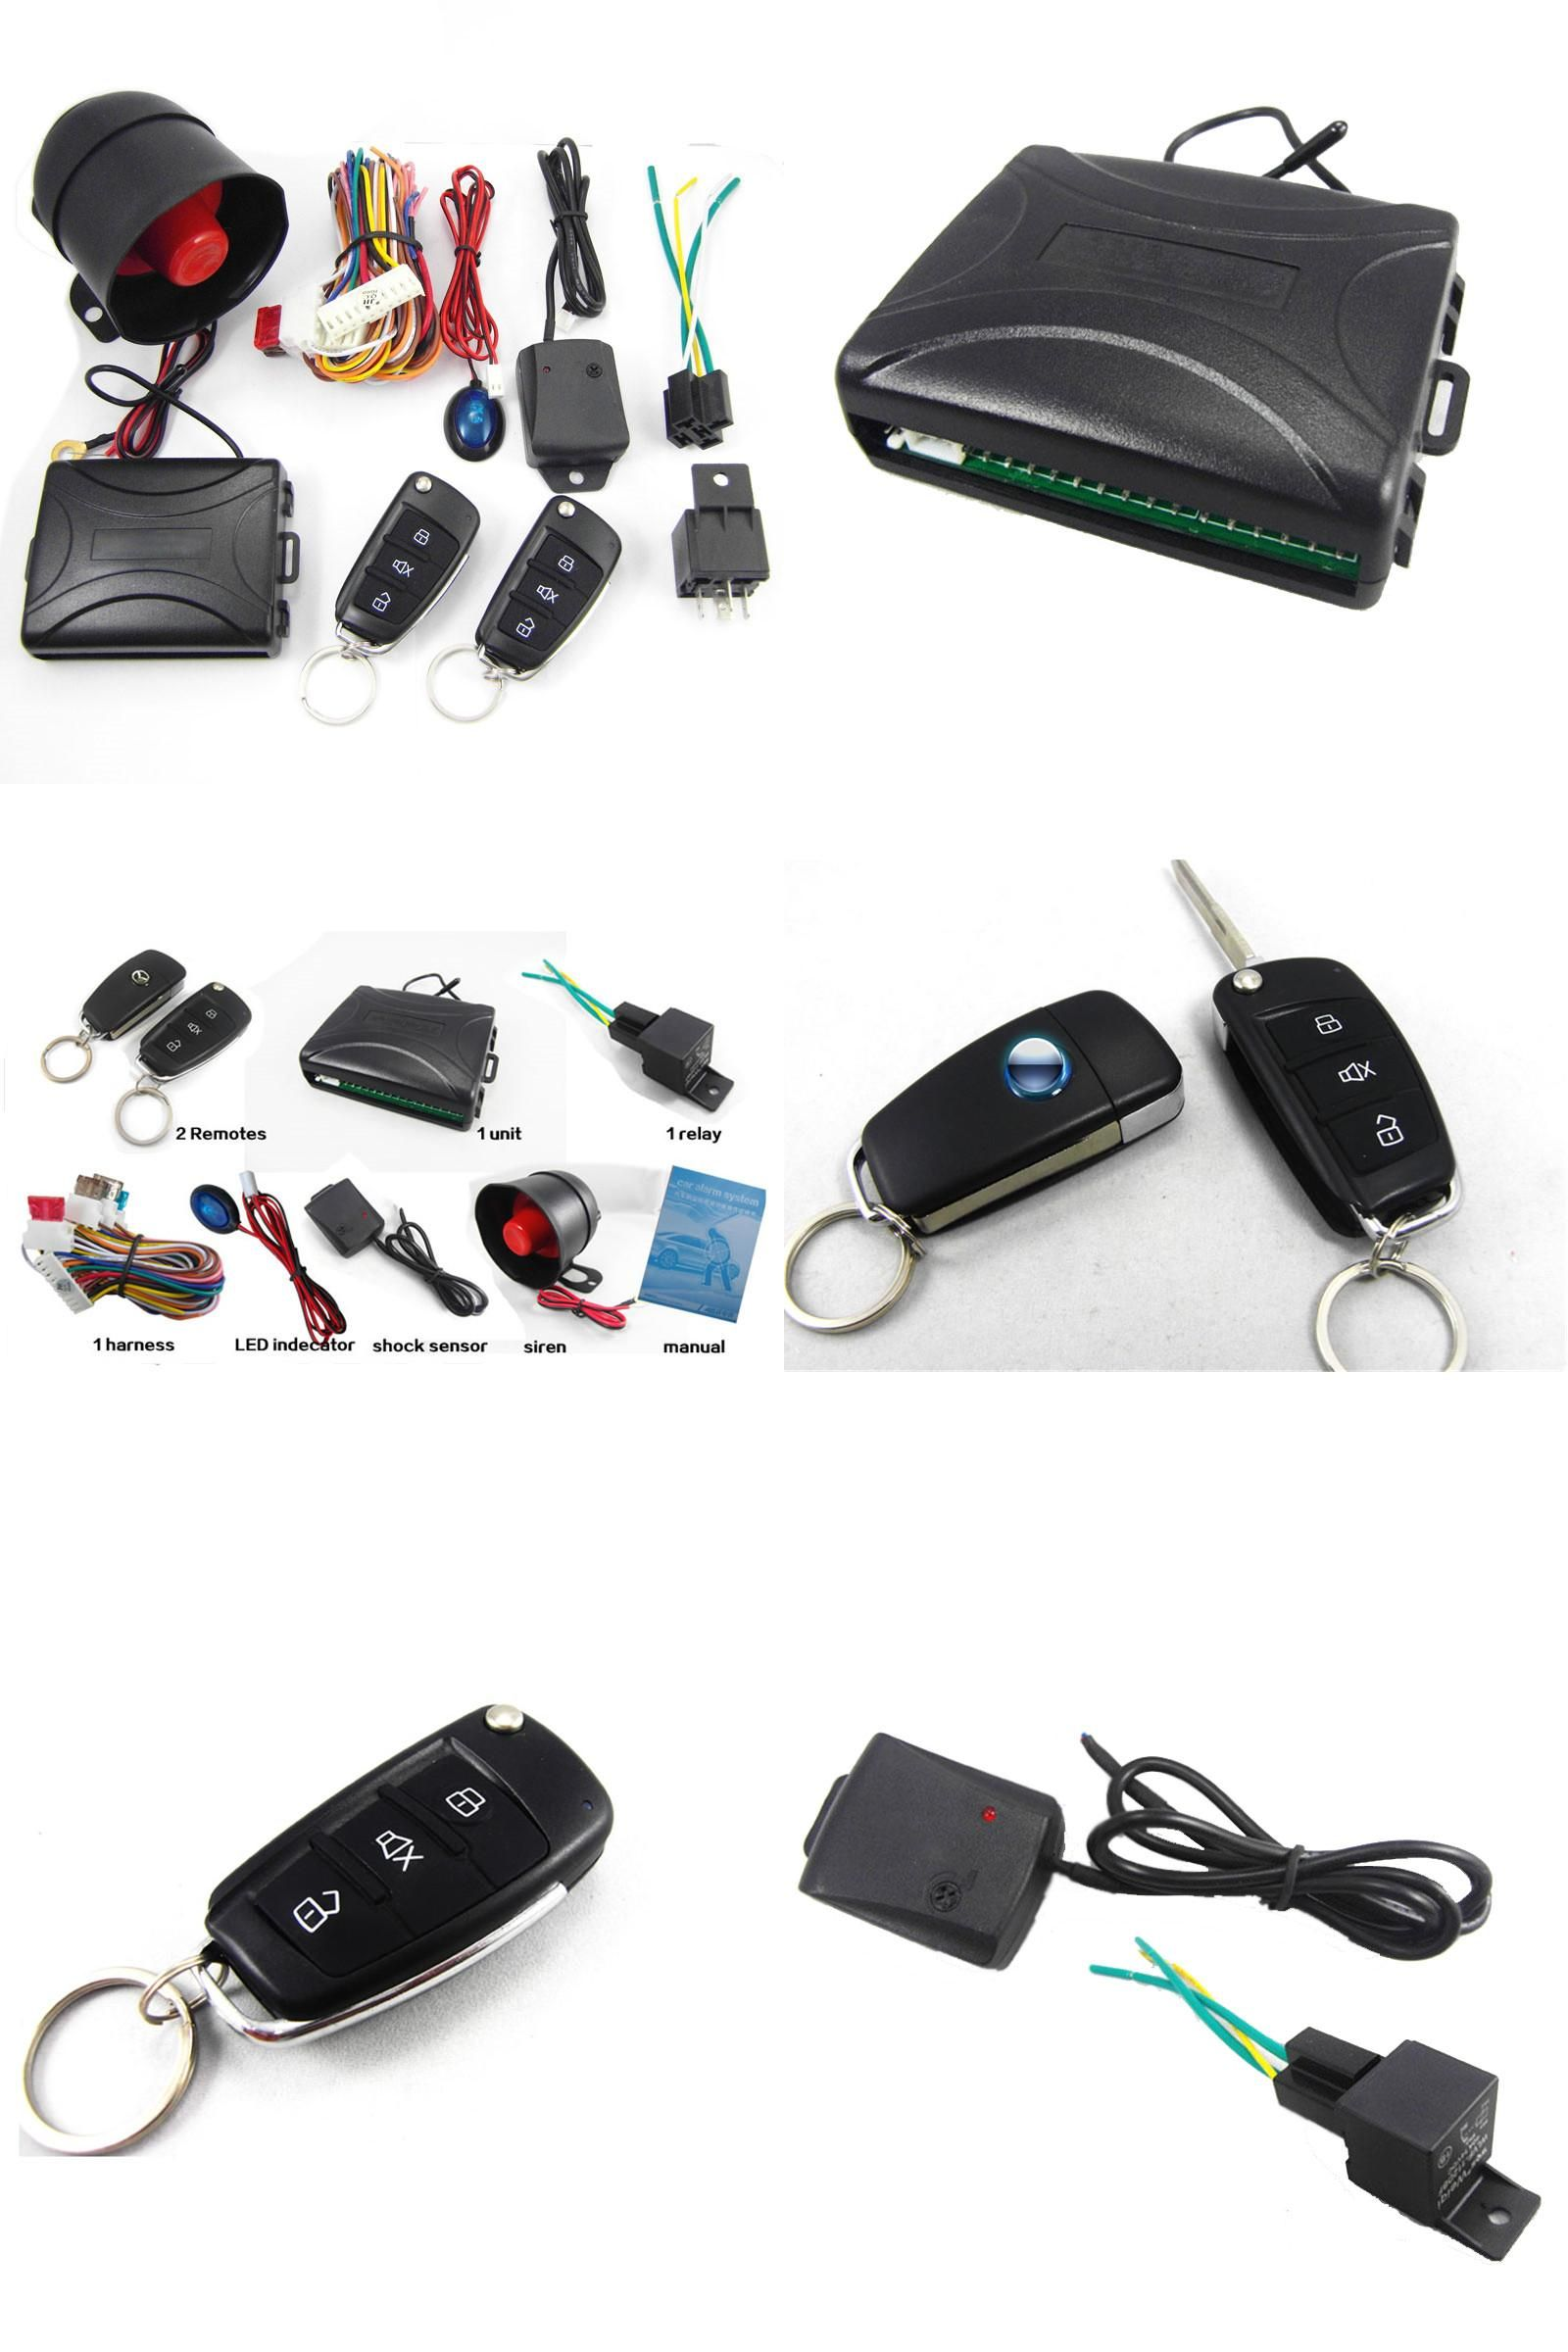 visit to buy] ca703-8118 one way remote control car alarm systems, Wiring diagram